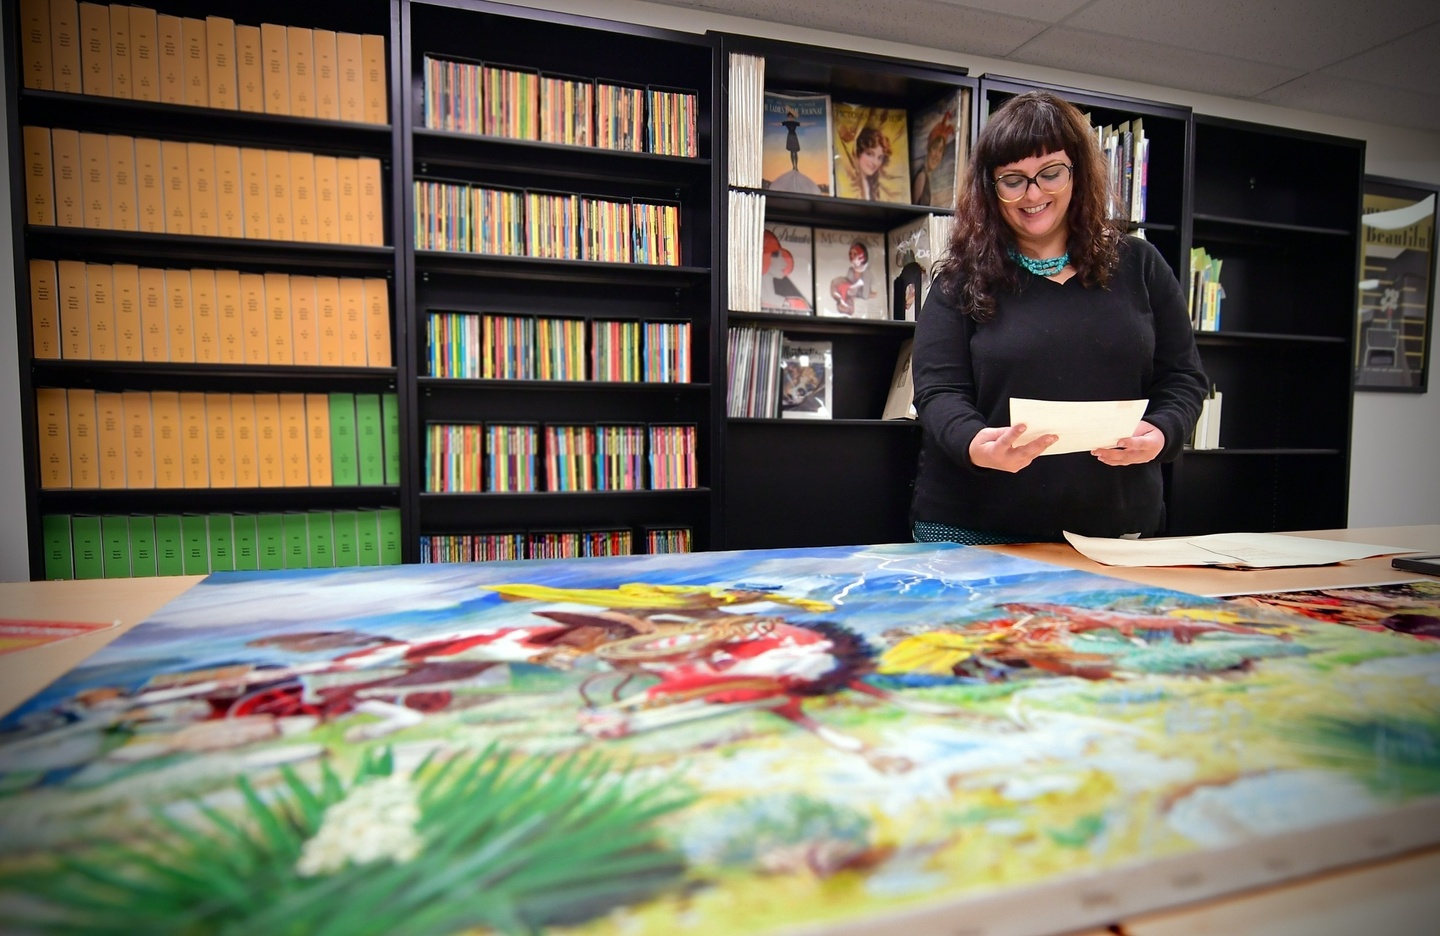 Person looks at original golden age illustrations on a table. Library stacks with periodicals can be seen behind them.